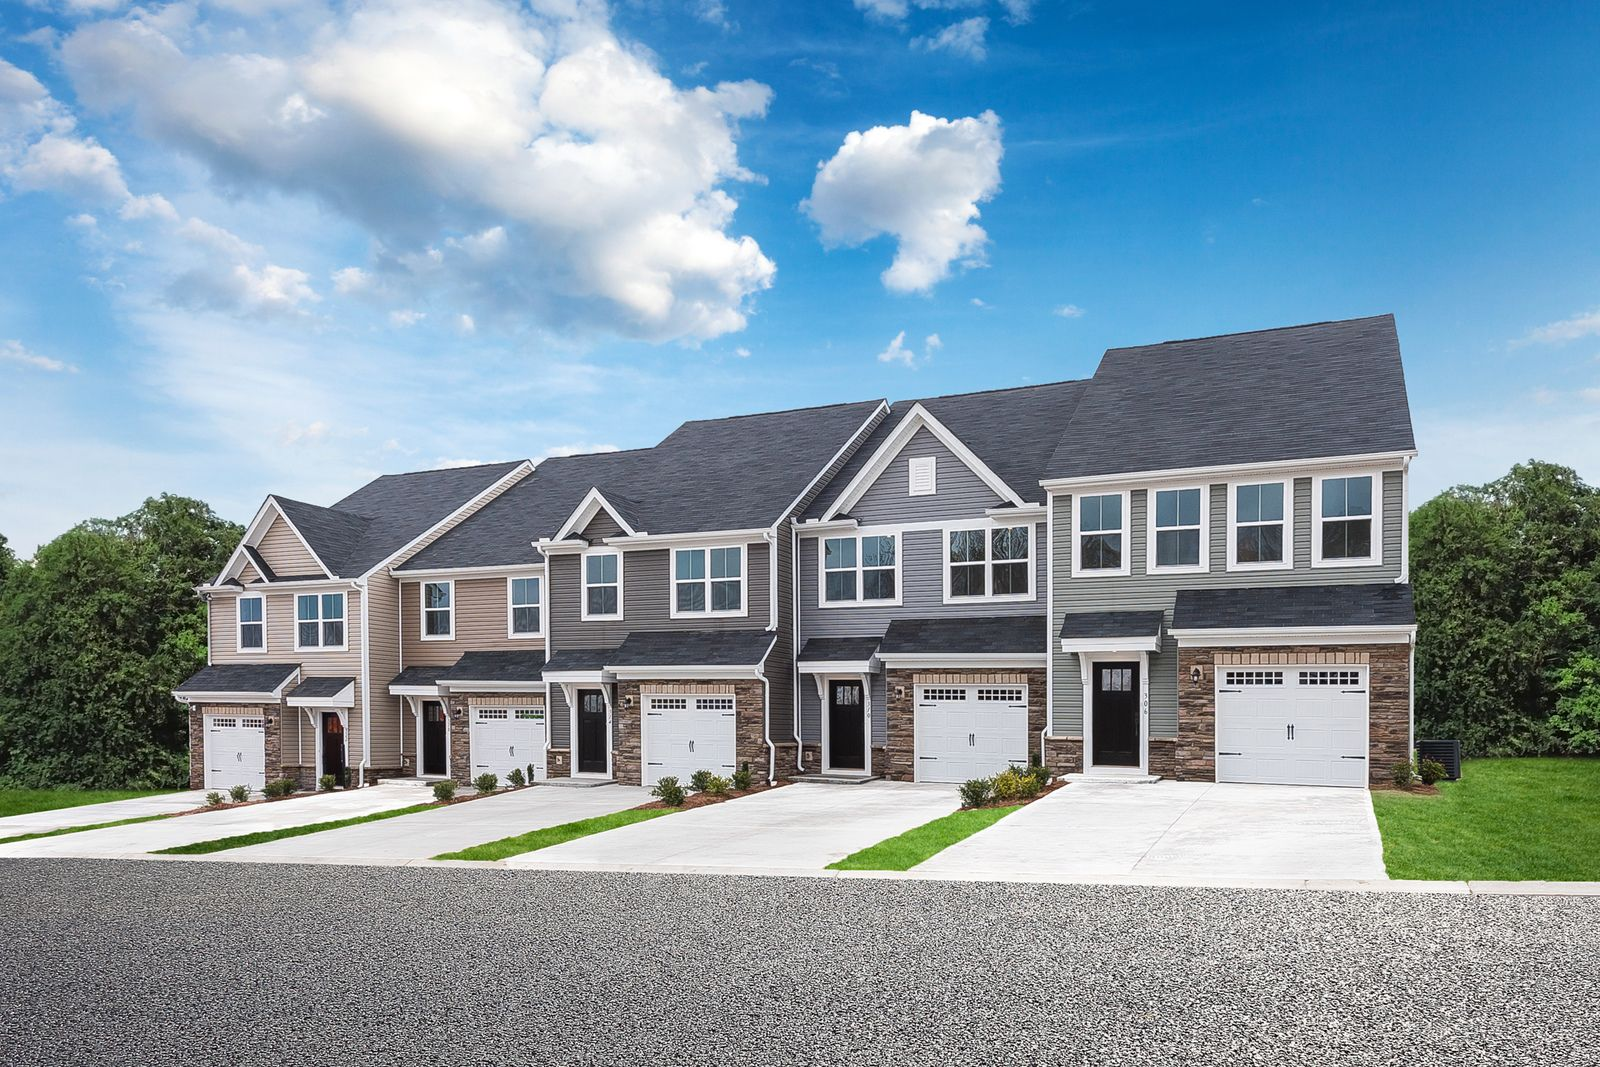 own near everything in west spartanburg:Say farewell to rent!Schedule a visit today to own a new townhome in WestStone.